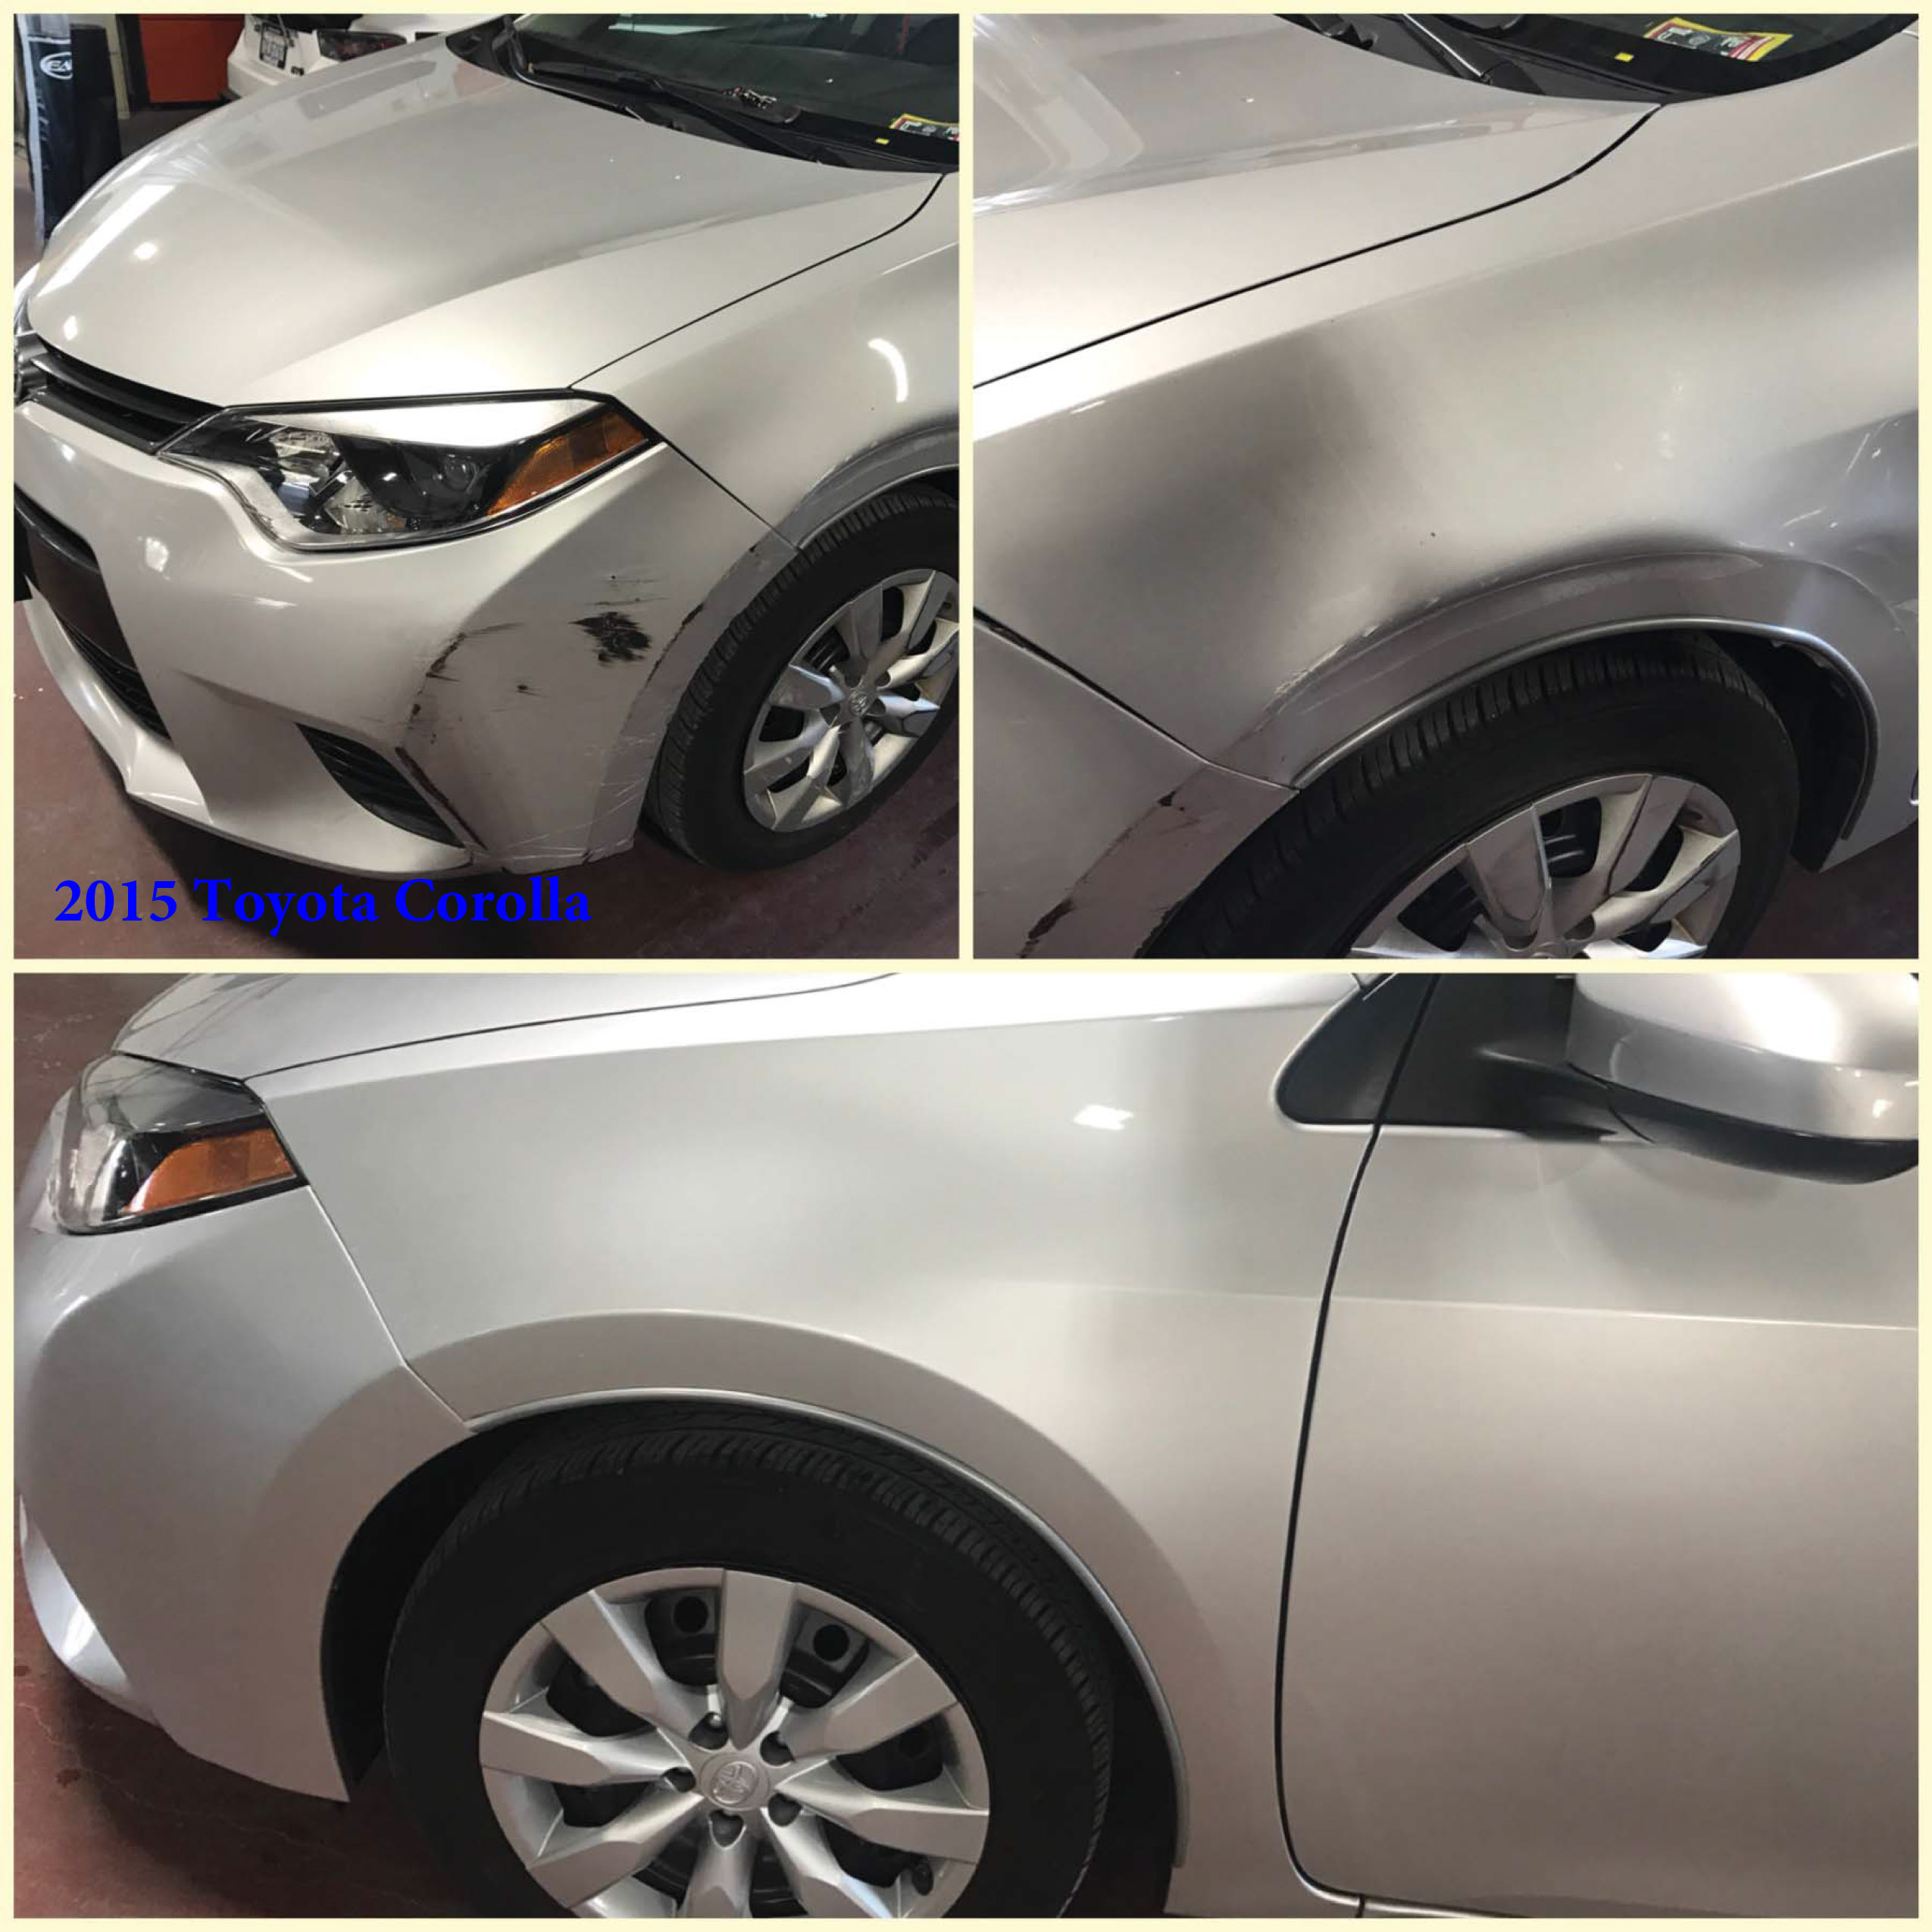 Toyota Corolla Paint Job RideShare Program